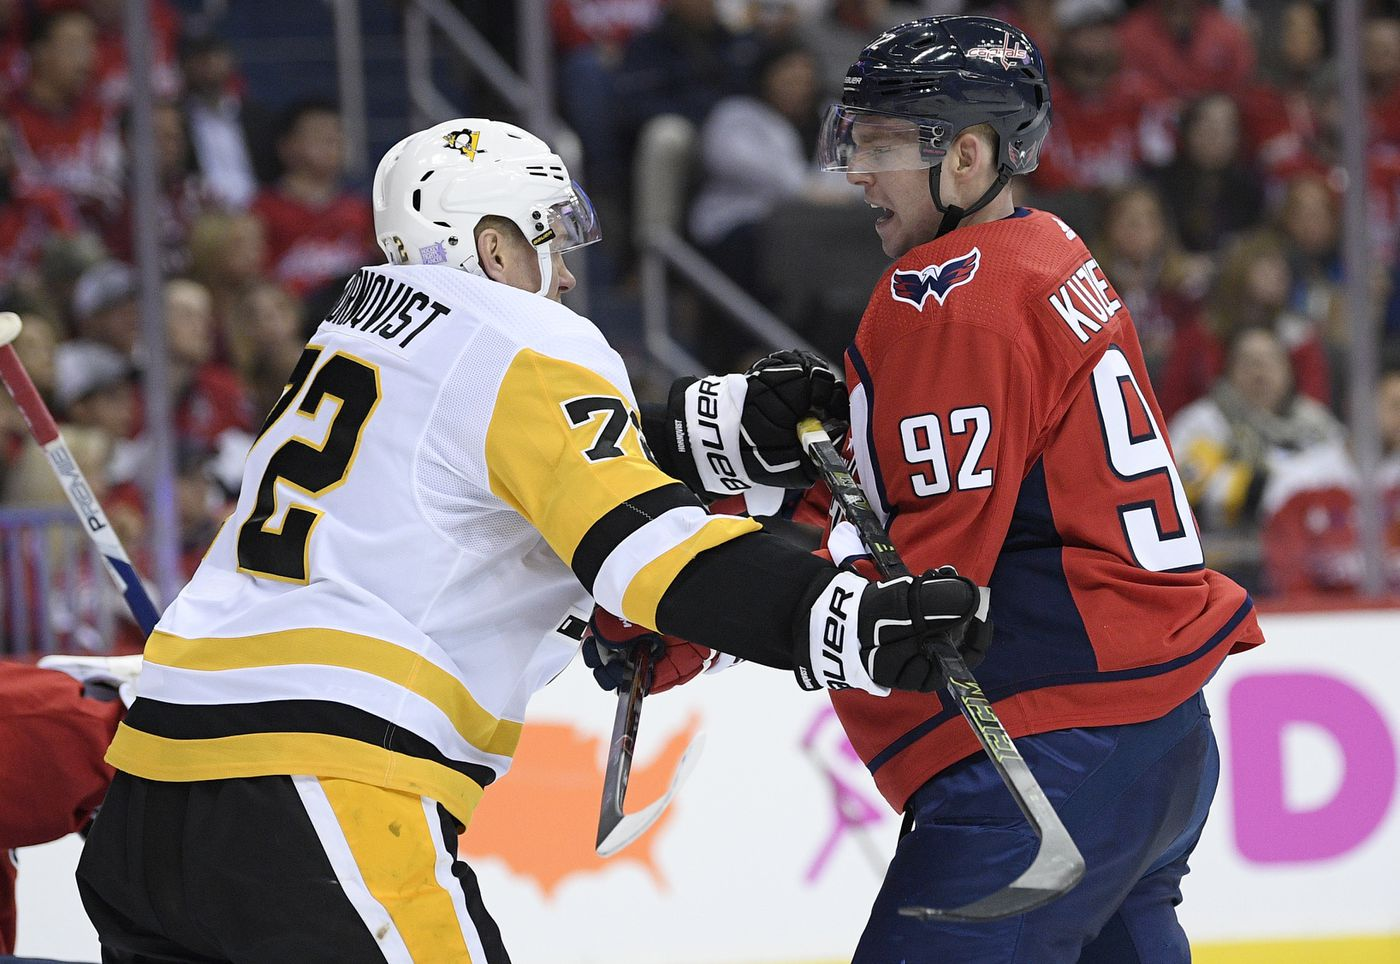 d0754c782f4 No hearing for Malkin for hit to head in Pens  loss at Caps